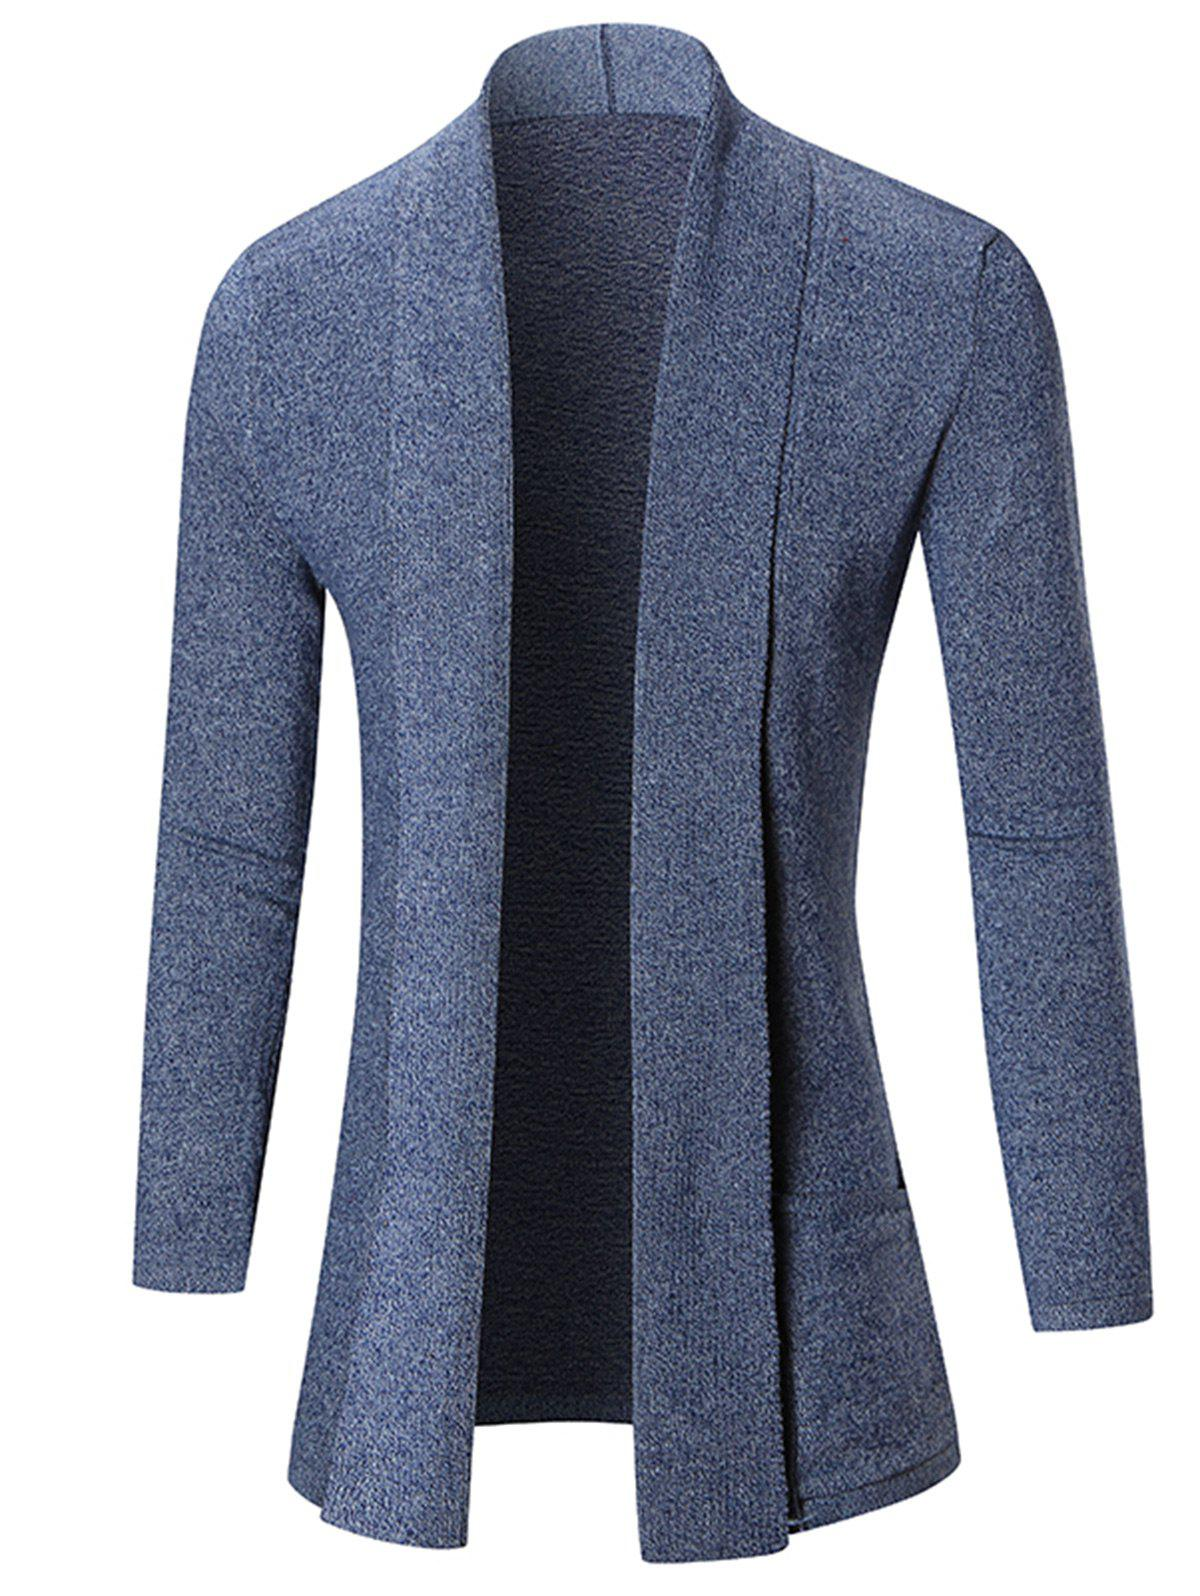 Fashion Open Front Shawl Collar Heathered Cardigan